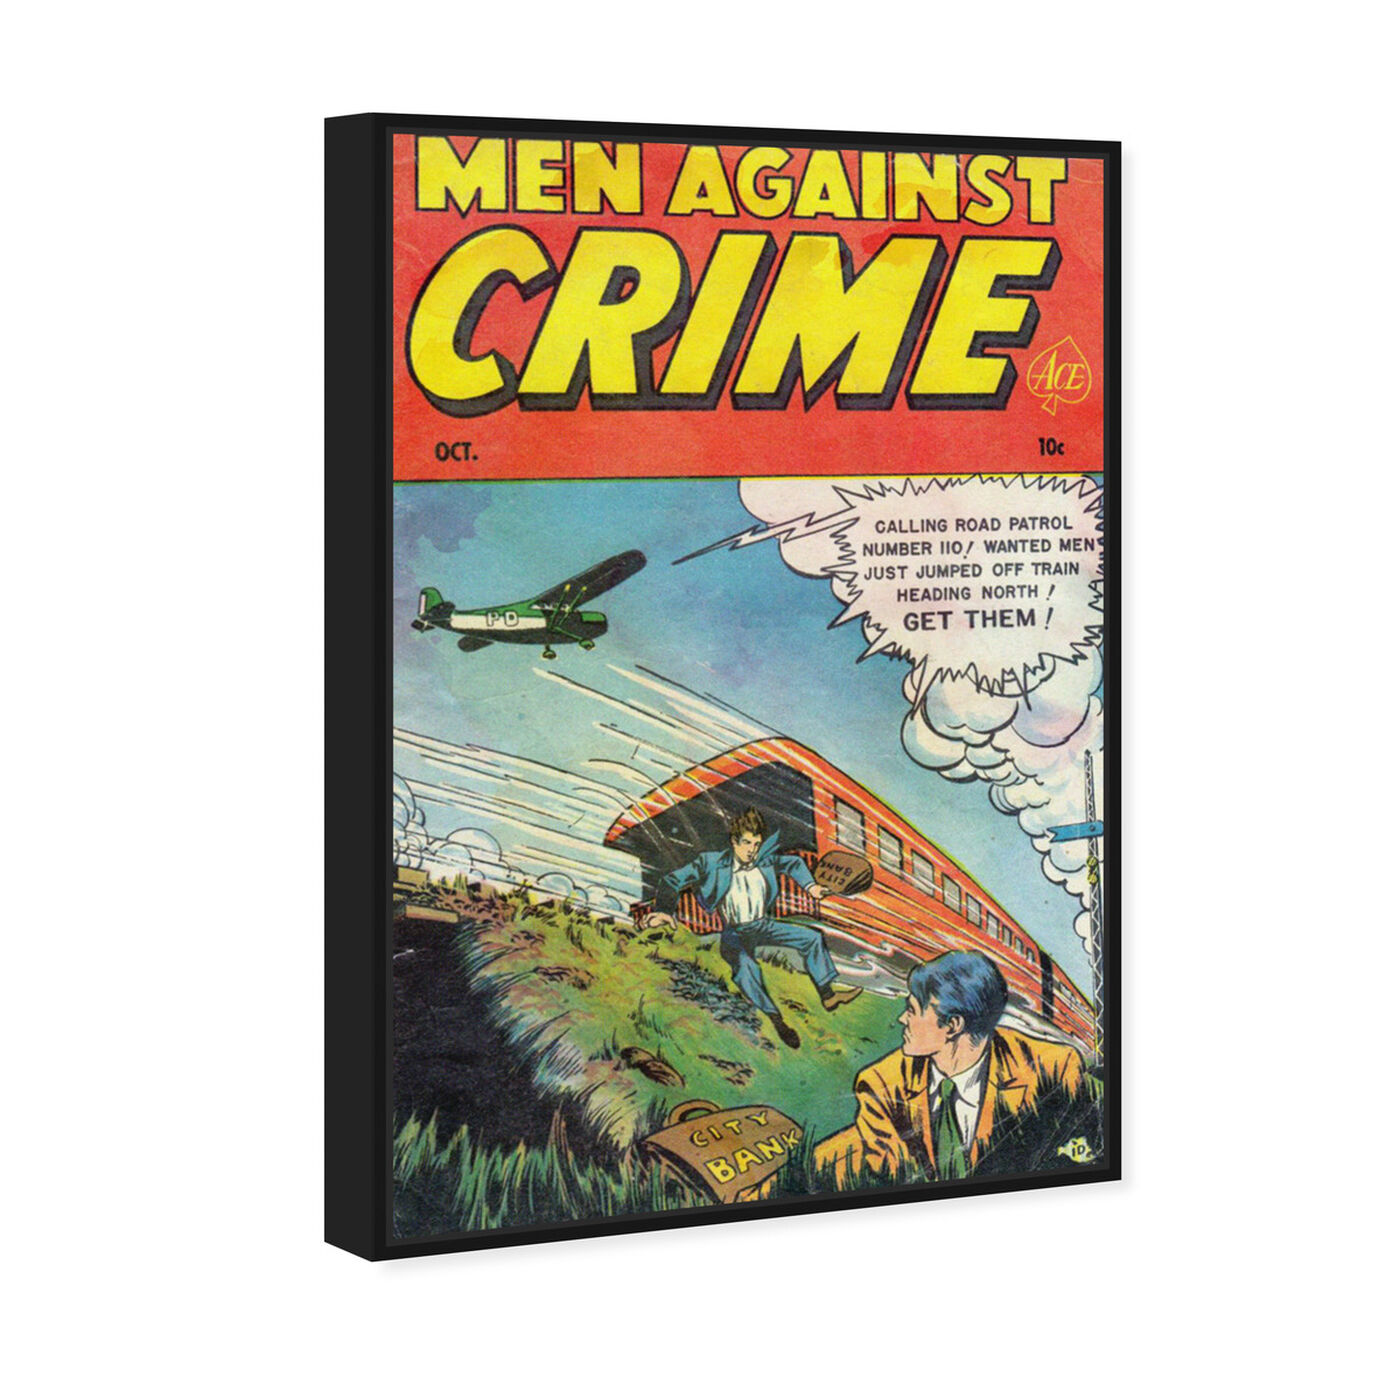 Angled view of Men Against Crime No.7, 1951 featuring advertising and comics art.